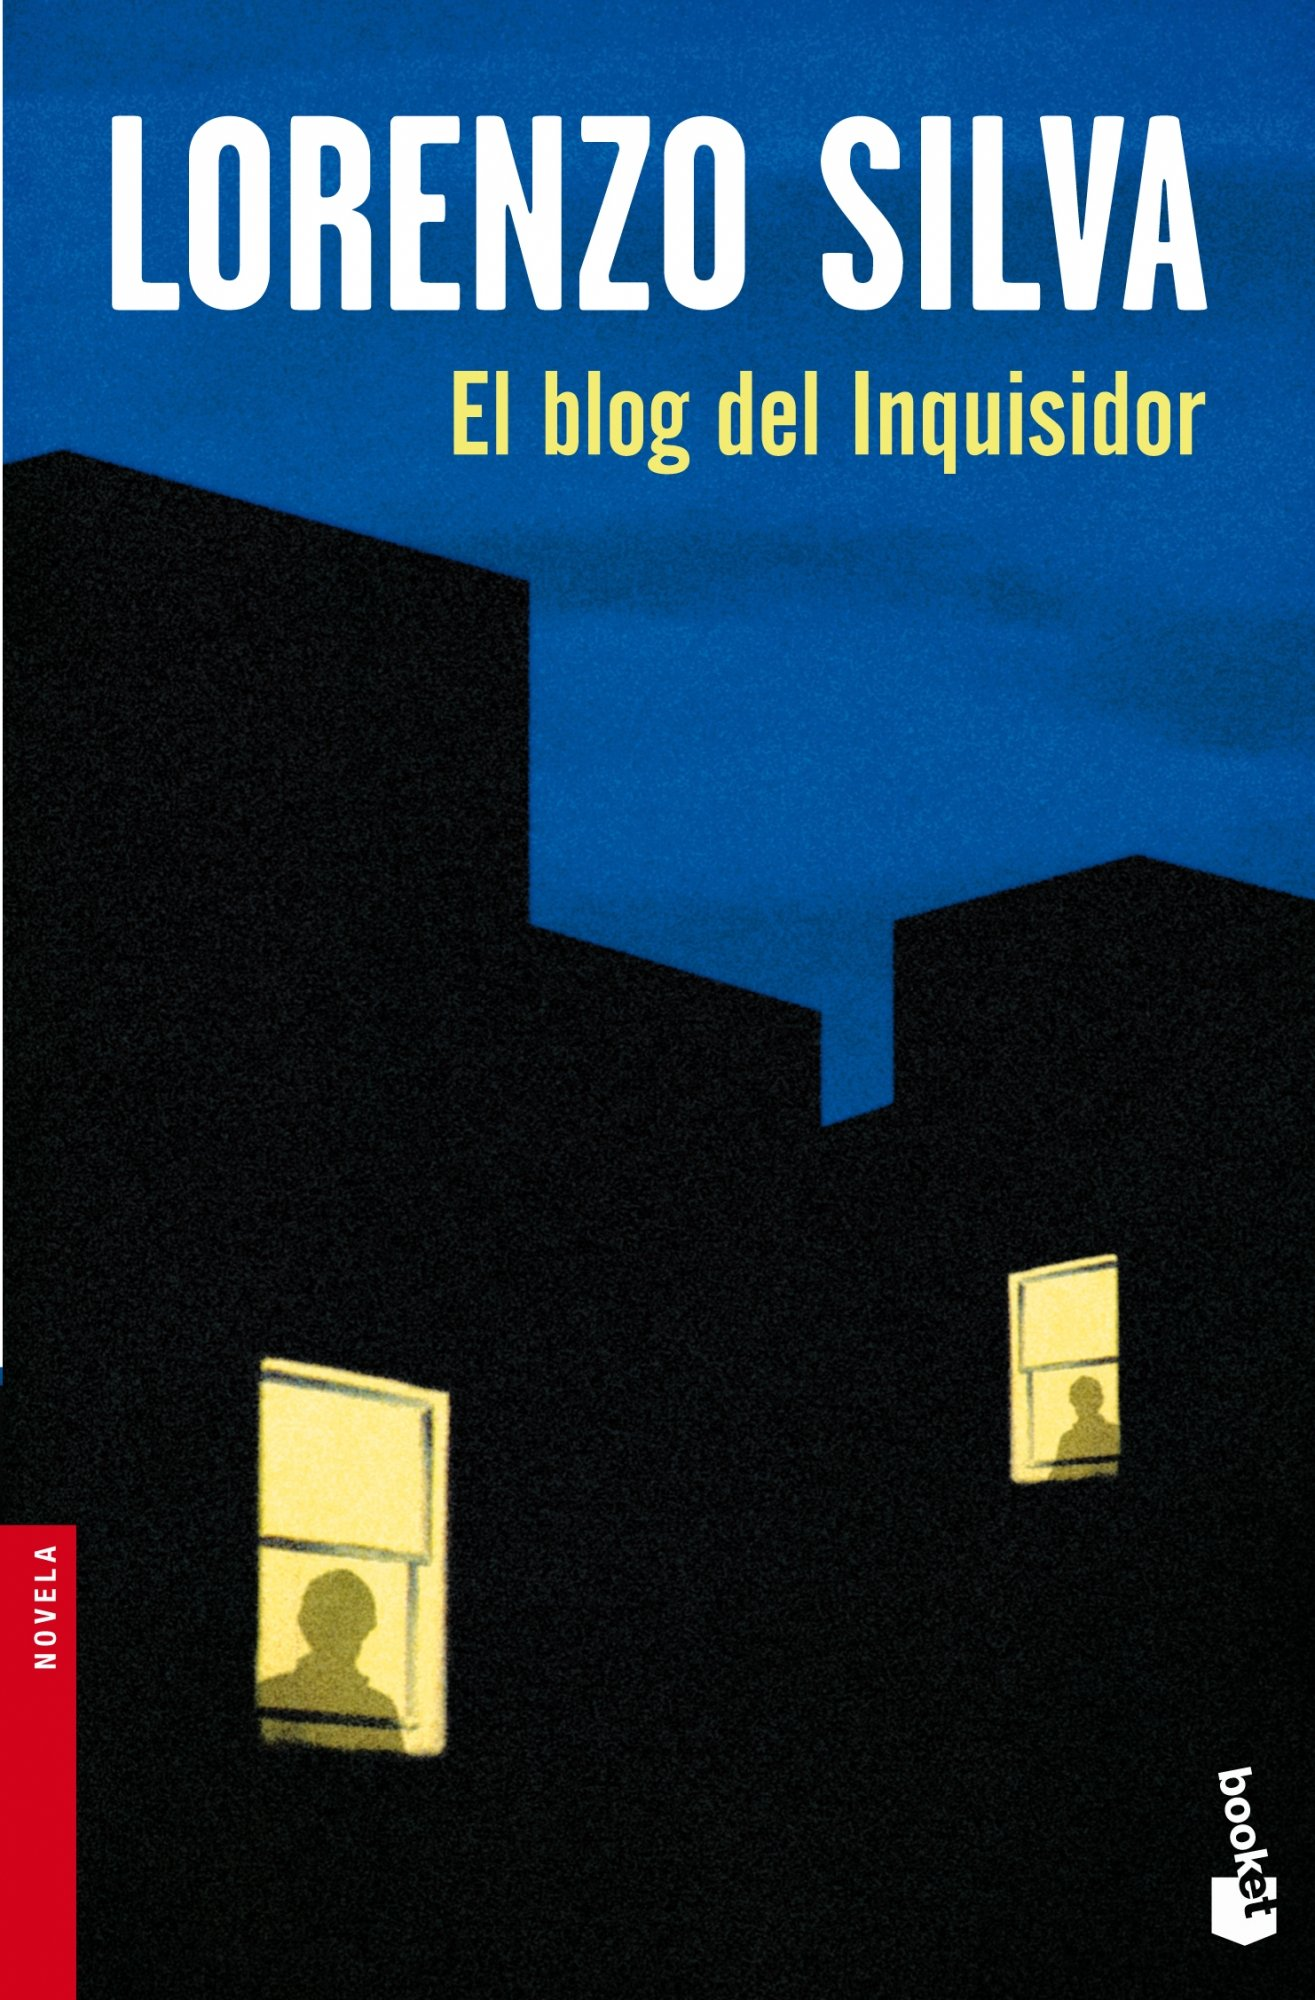 El blog del Inquisidor (Novela y Relatos): Amazon.es: Lorenzo Silva: Libros